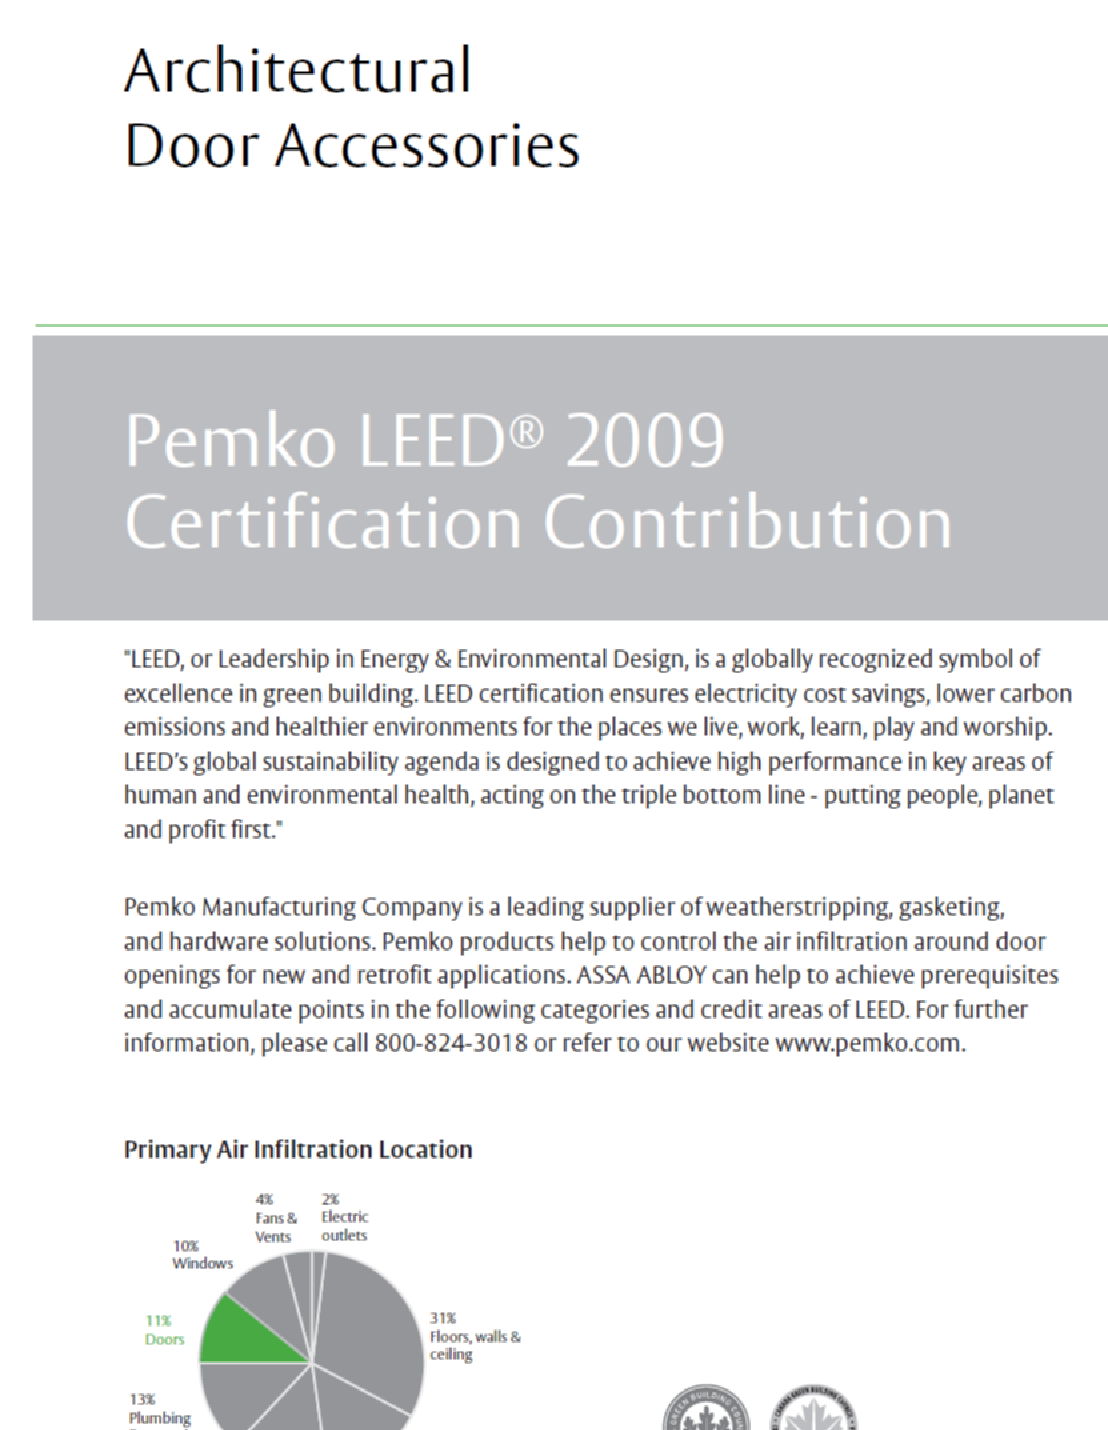 Assa abloy the good design studio leed documentation pemko leed certification contribution xflitez Gallery